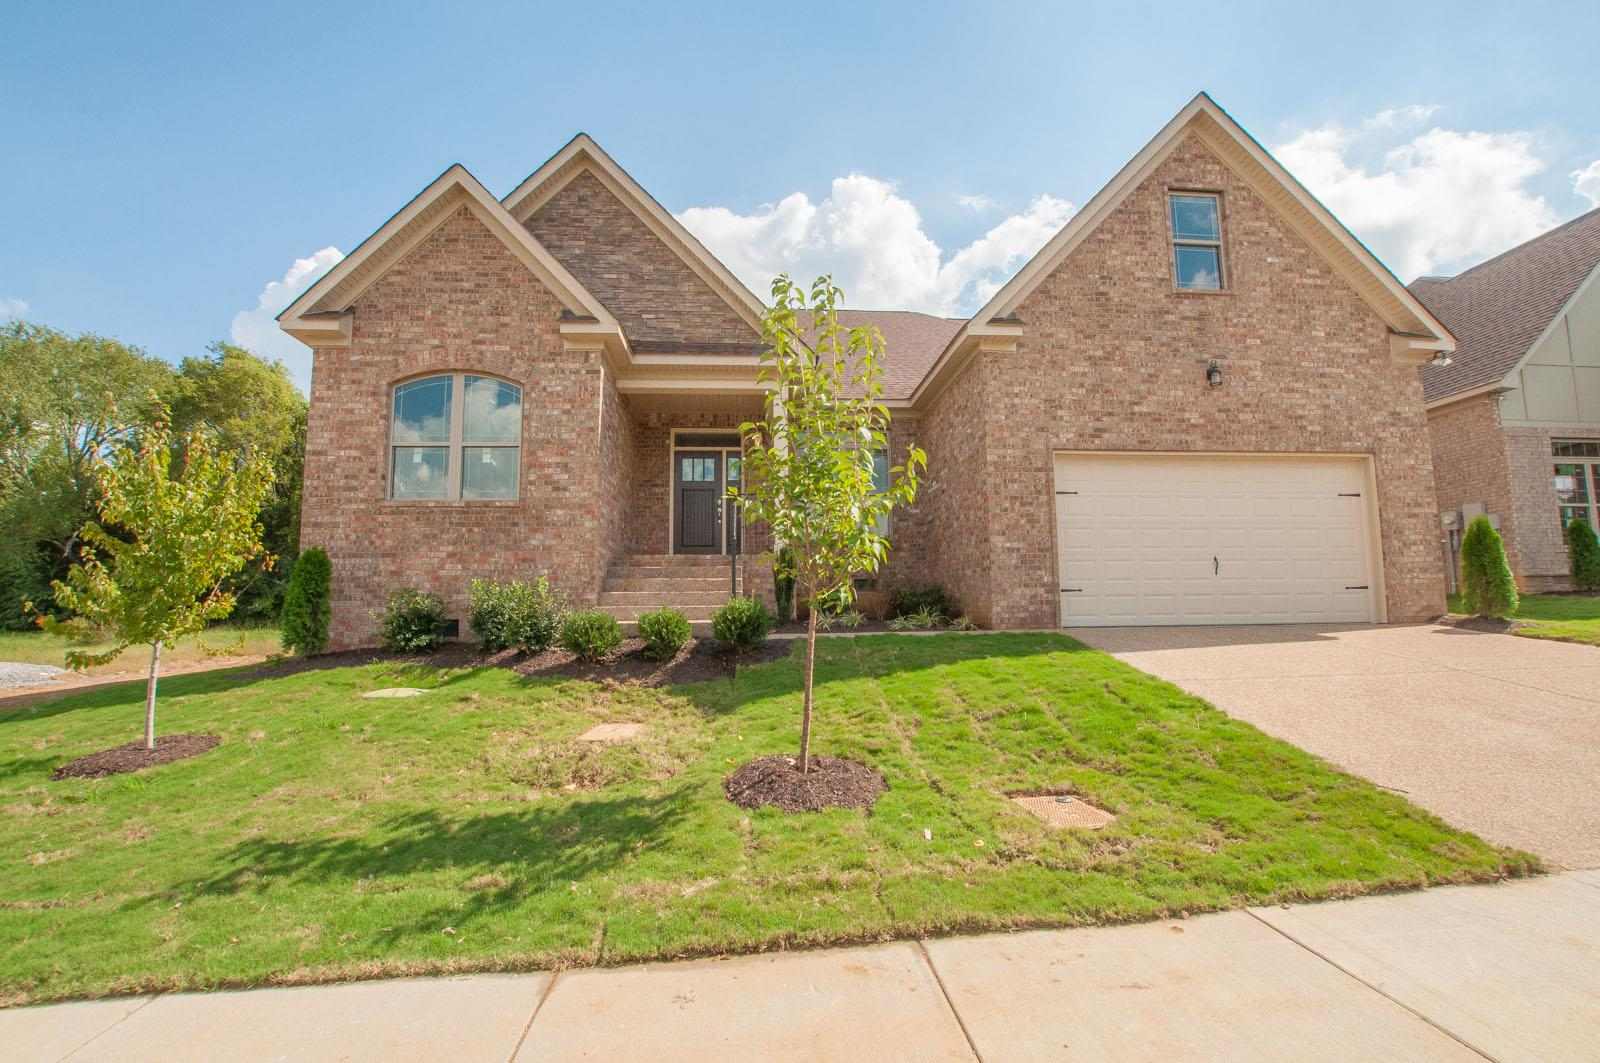 7221 RISING FAWN TRAIL, one of homes for sale in Hermitage